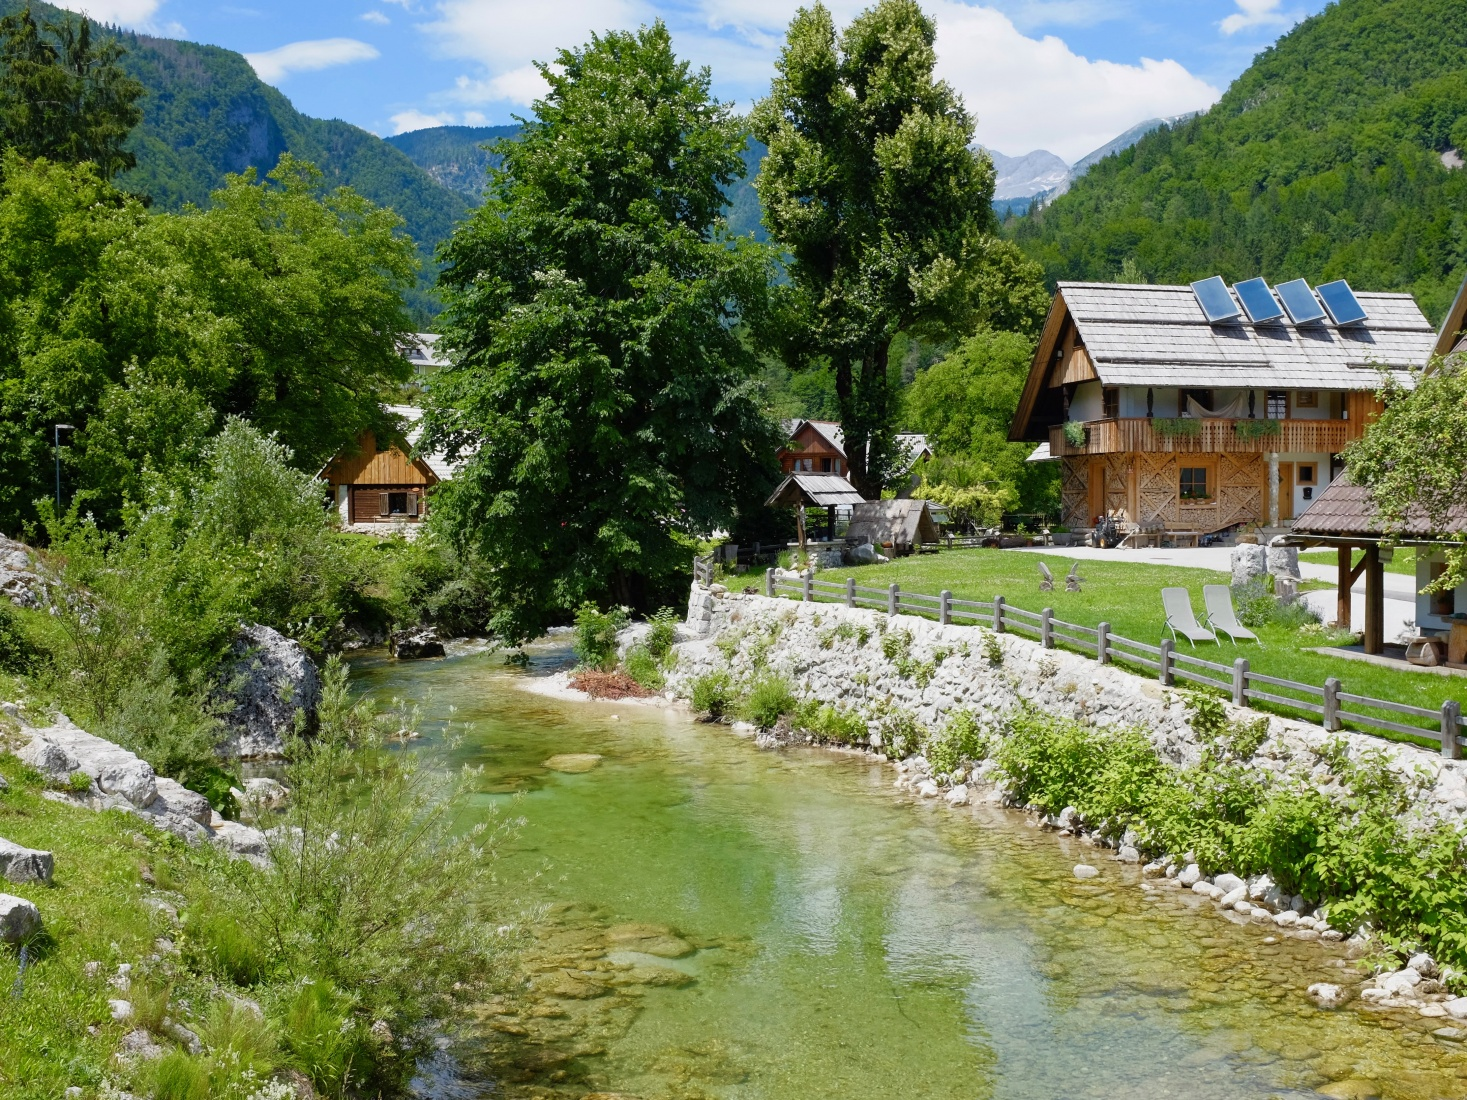 A small village along the water in the Slovenian mountains.